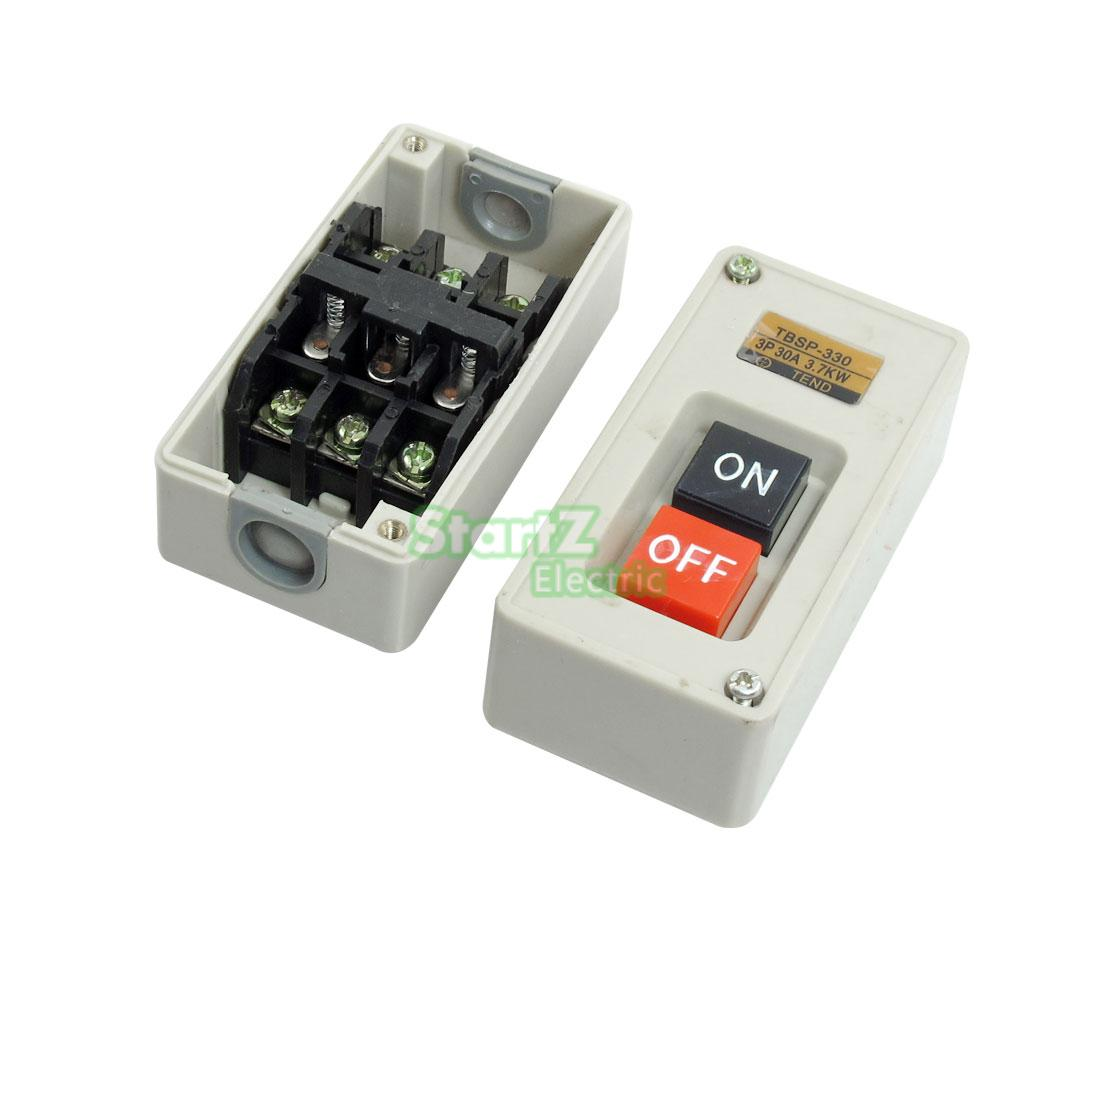 3P 3 Phase 30A 3.7KW Self Lock On/Off Power Pushbutton Switch TBSP-3303P 3 Phase 30A 3.7KW Self Lock On/Off Power Pushbutton Switch TBSP-330